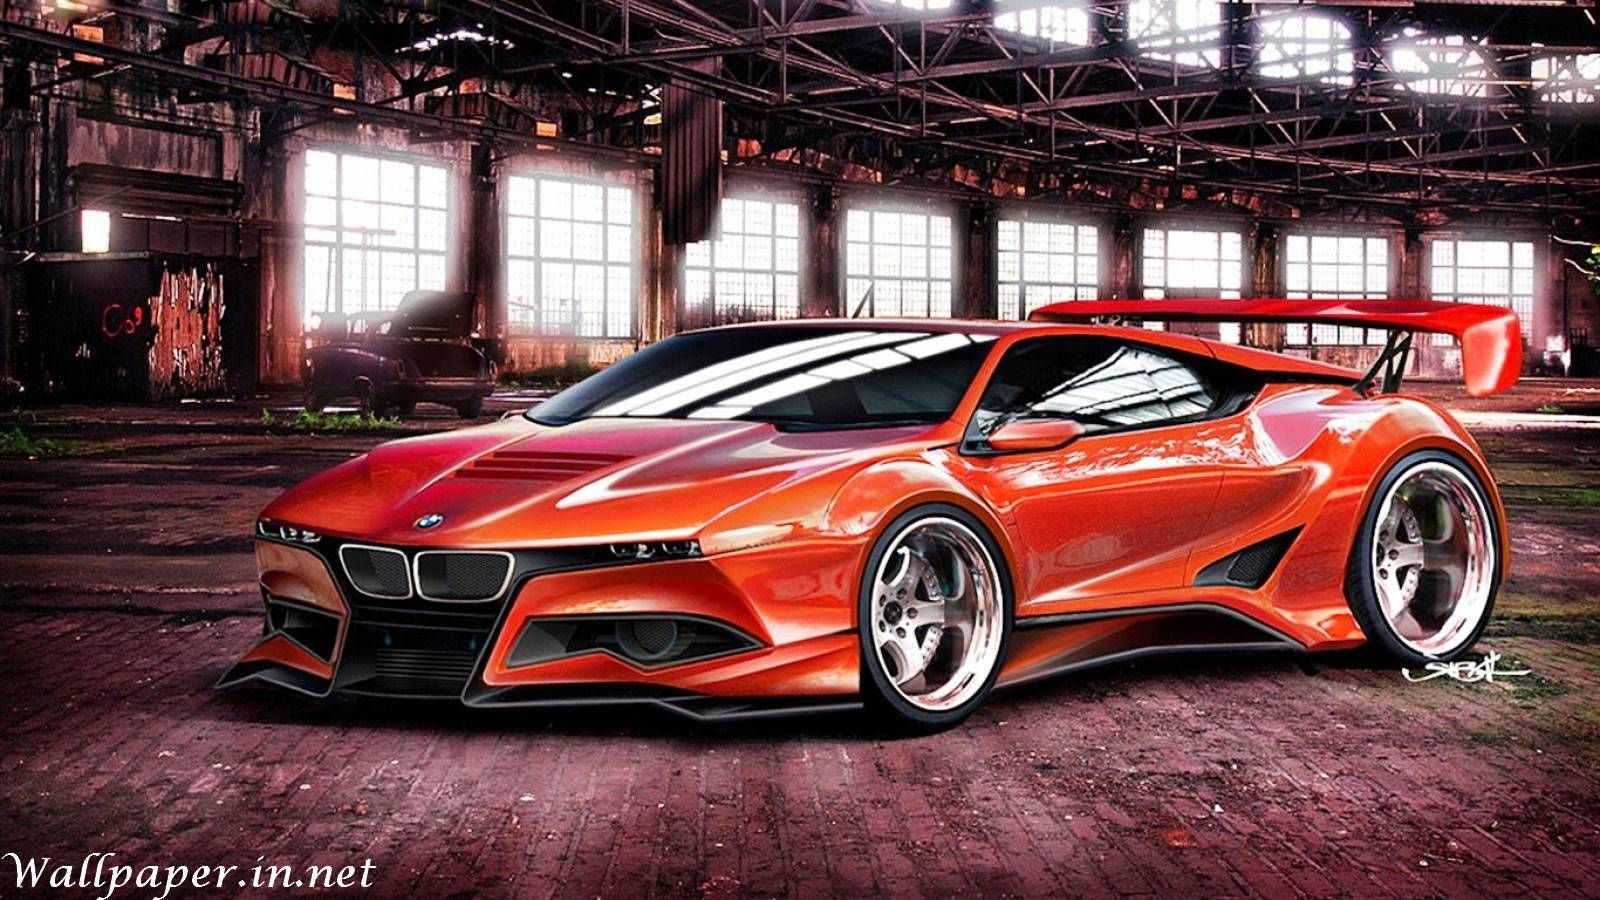 New Bmw Sports Cars Wallpapers Free Download For Desktop